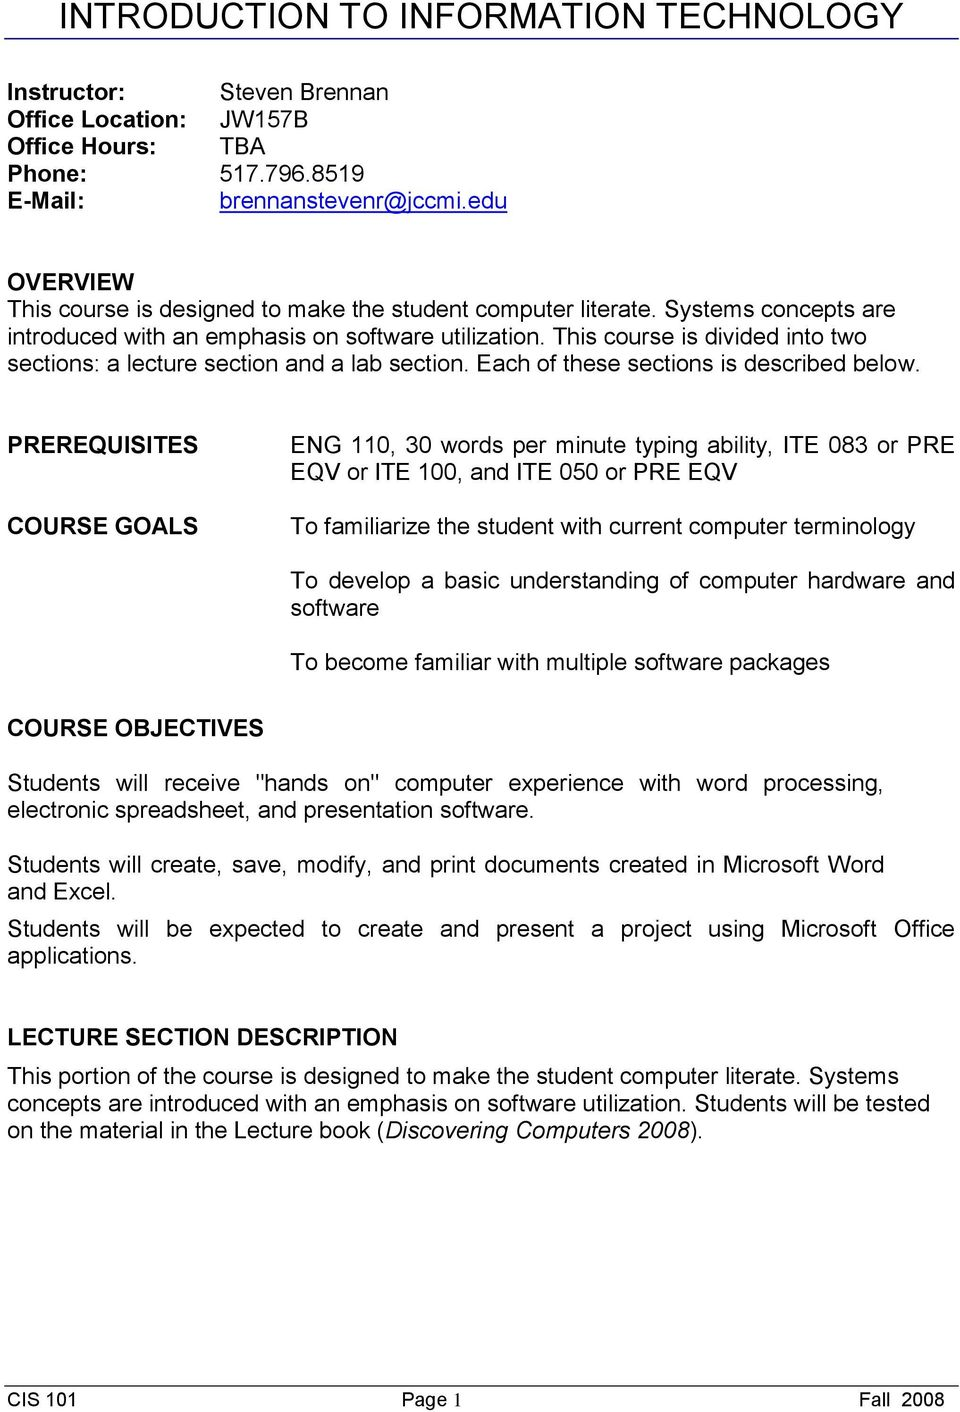 PREREQUISITES COURSE GOALS ENG 110, 30 words per minute typing ability, ITE 083 or PRE EQV or ITE 100, and ITE 050 or PRE EQV To familiarize the student with current computer terminology To develop a